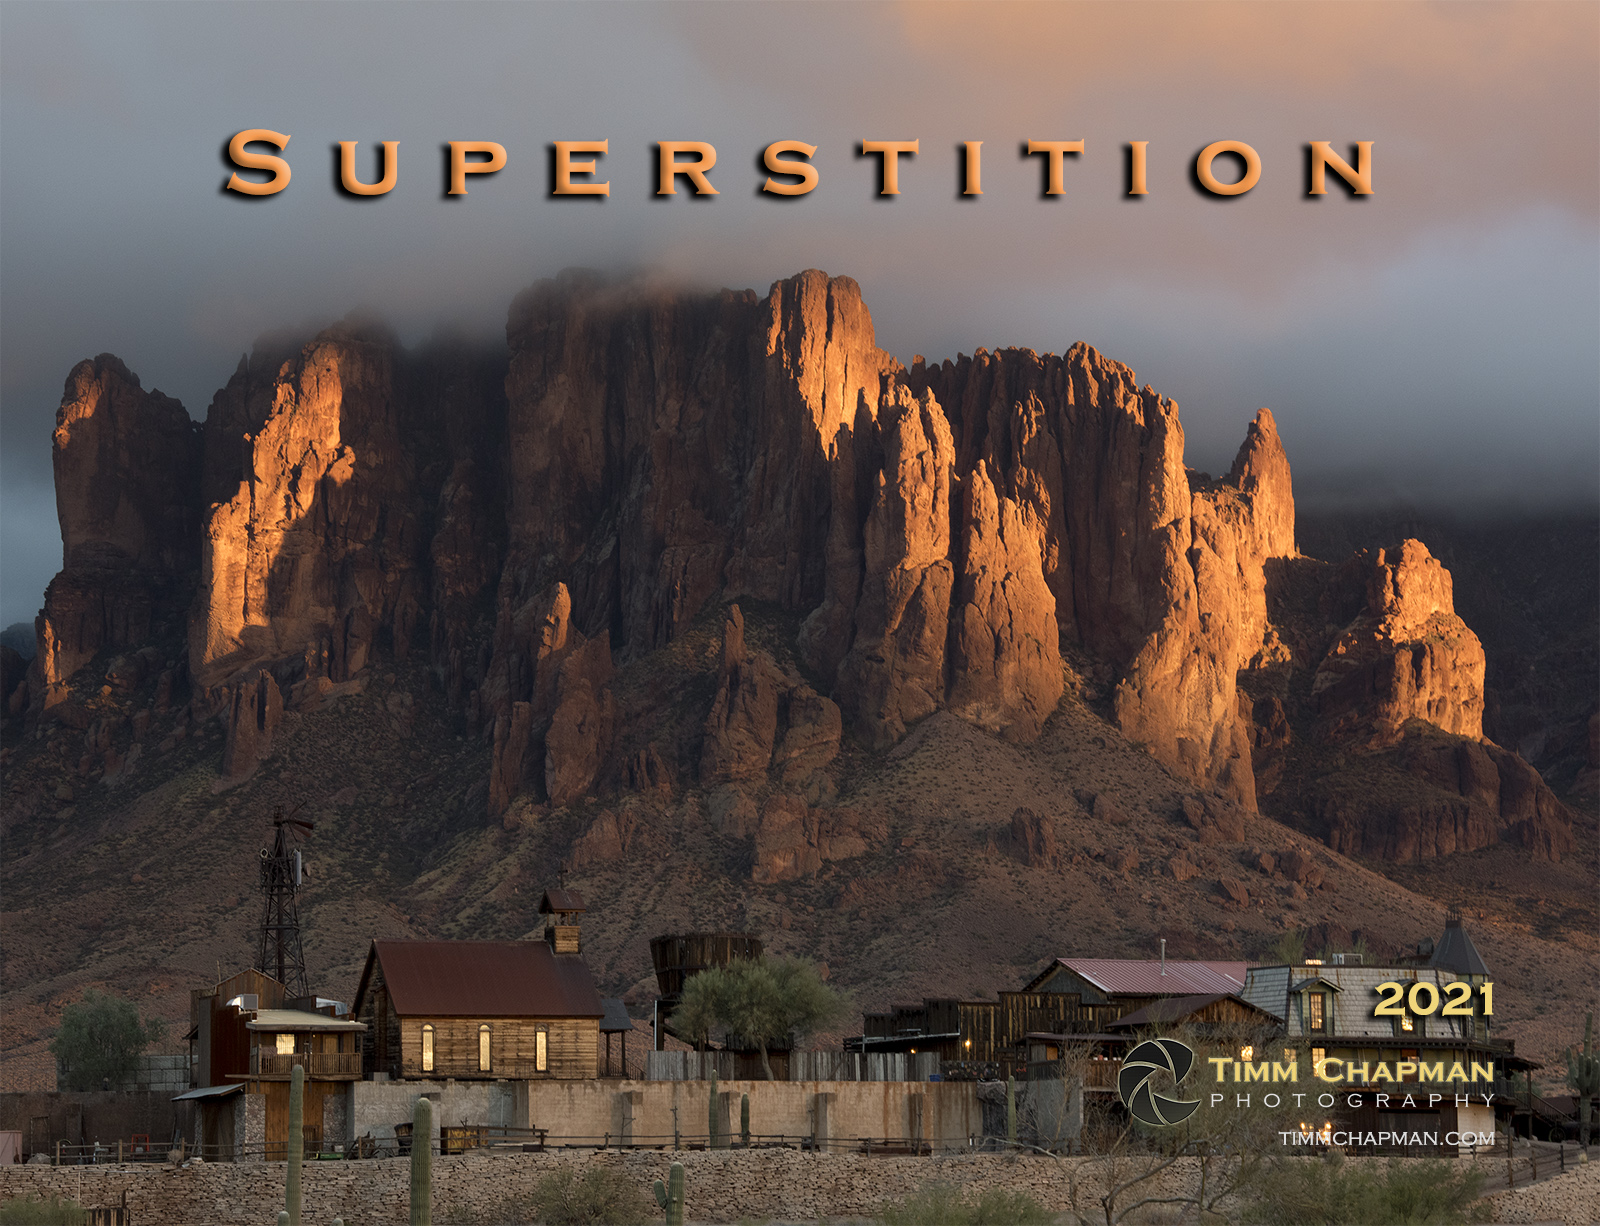 A collection of images of Arizona's iconic Superstition Mountain presented in a 12 month calendar for 2021